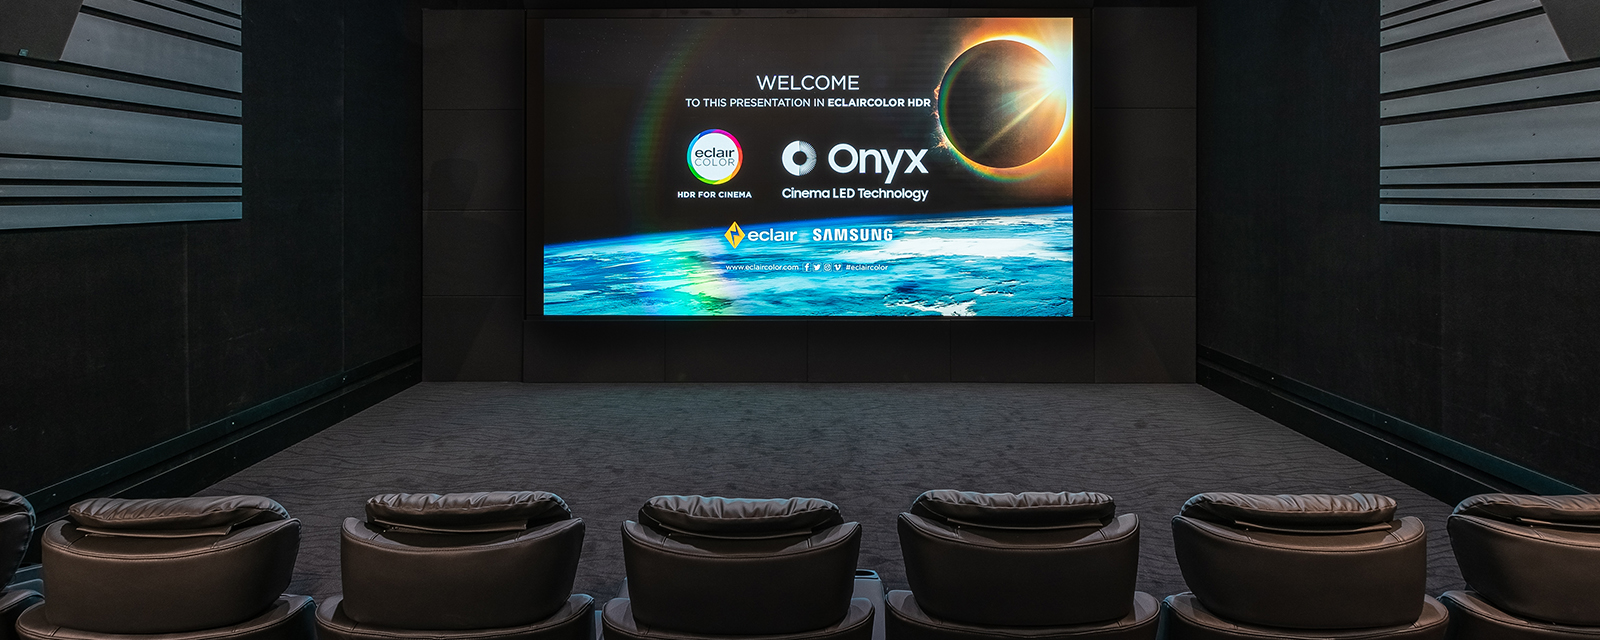 Samsung Onyx Cinema LED